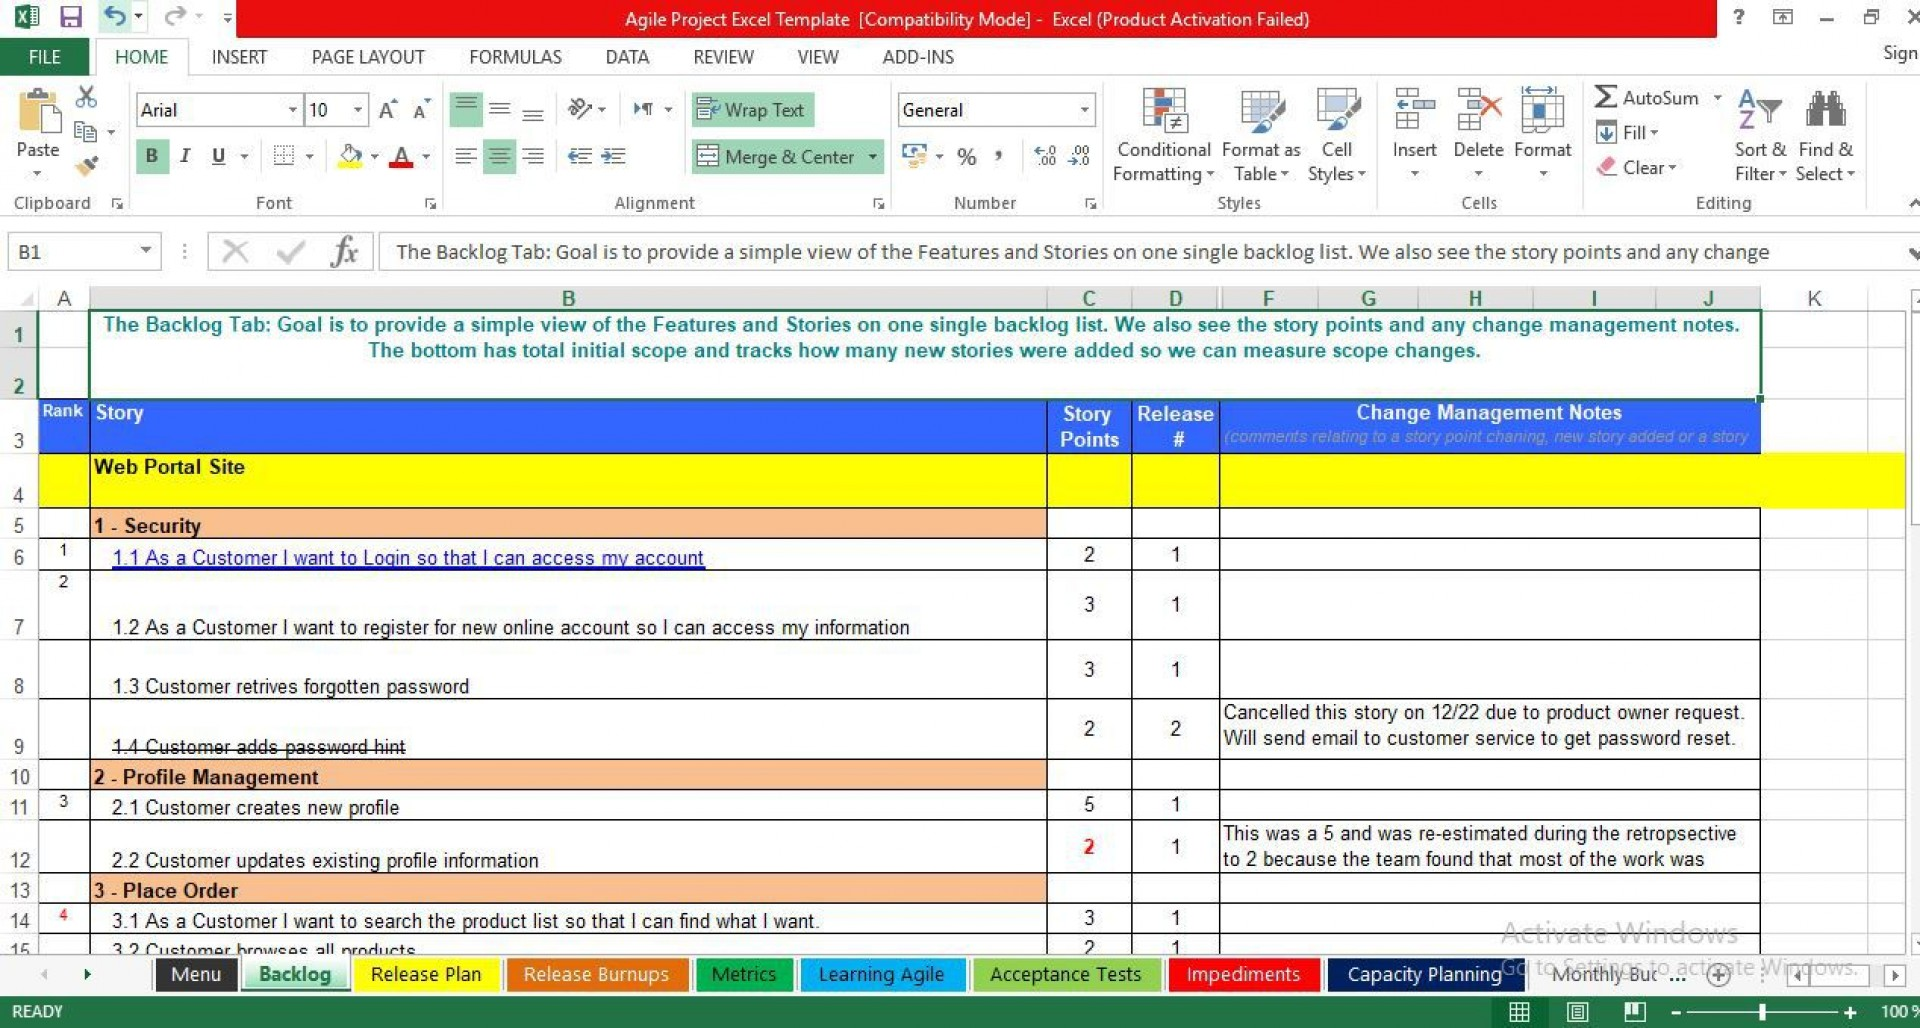 002 Fascinating Software Project Management Template Free Download Inspiration 1920